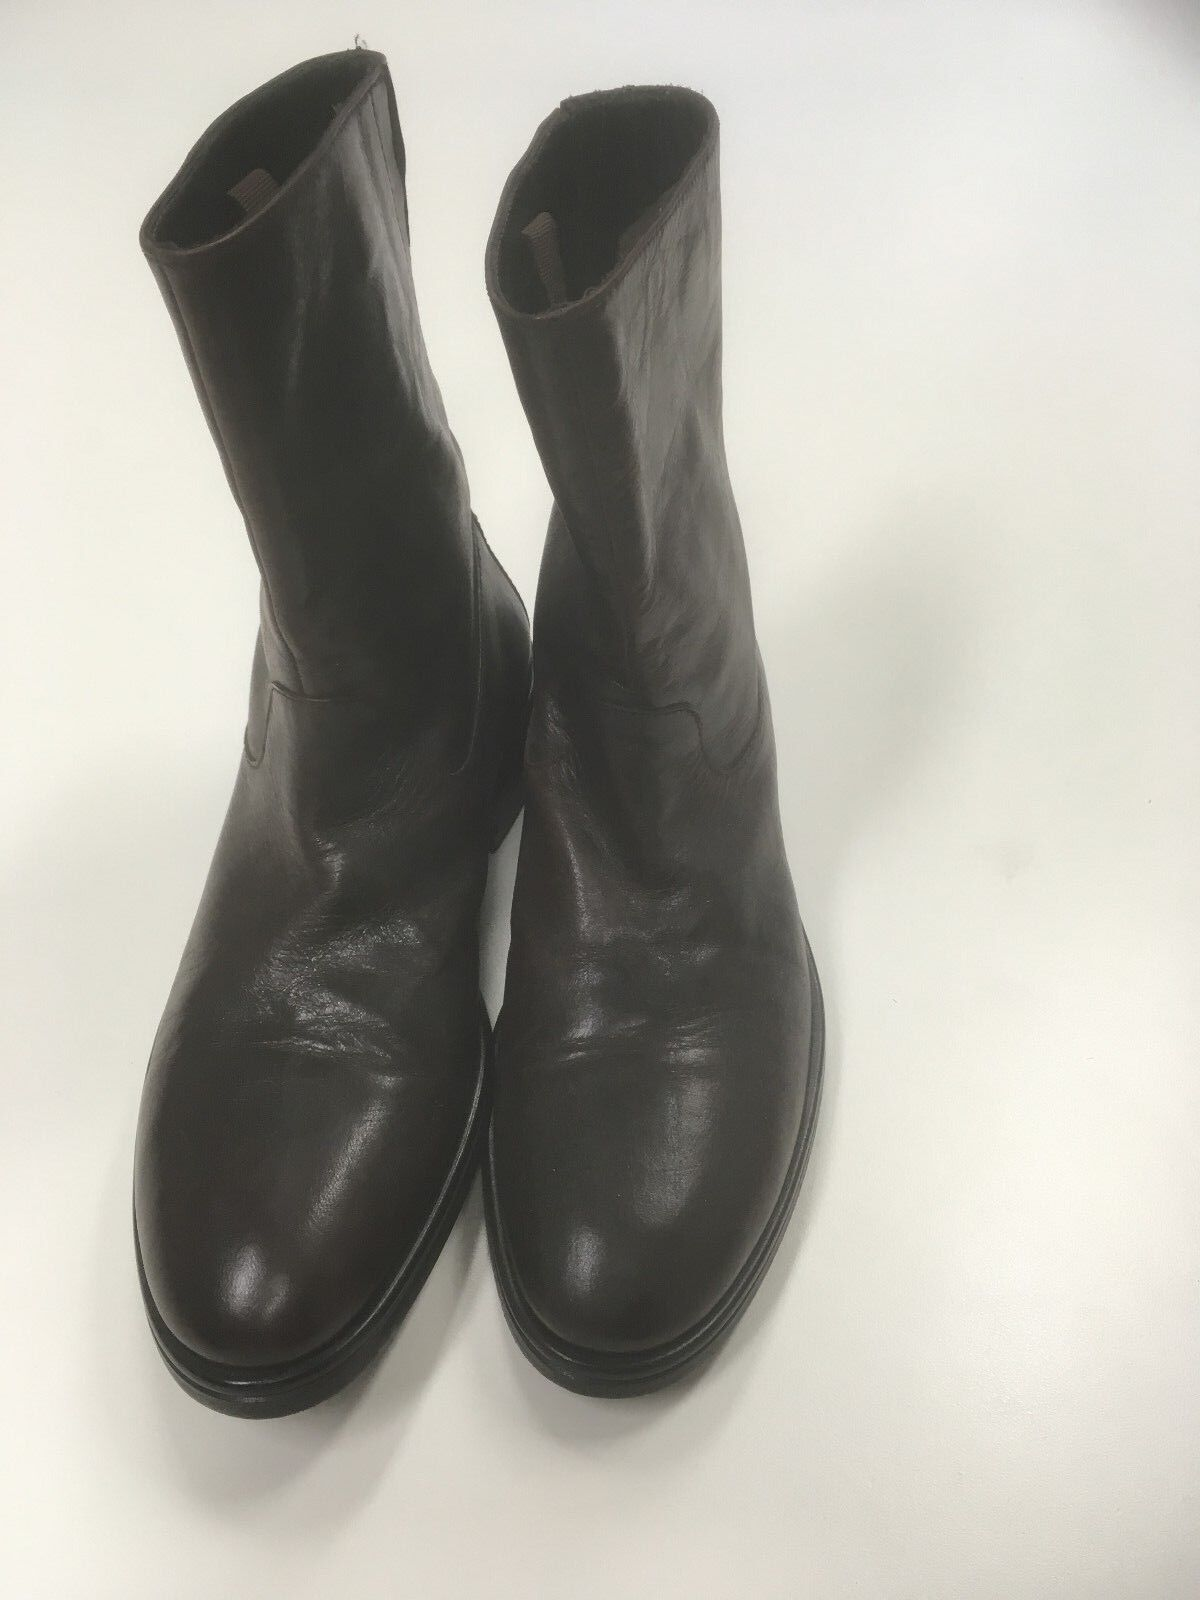 759 Giorgio Armani brown leather pull-on boots - size 9 , 42 EUR